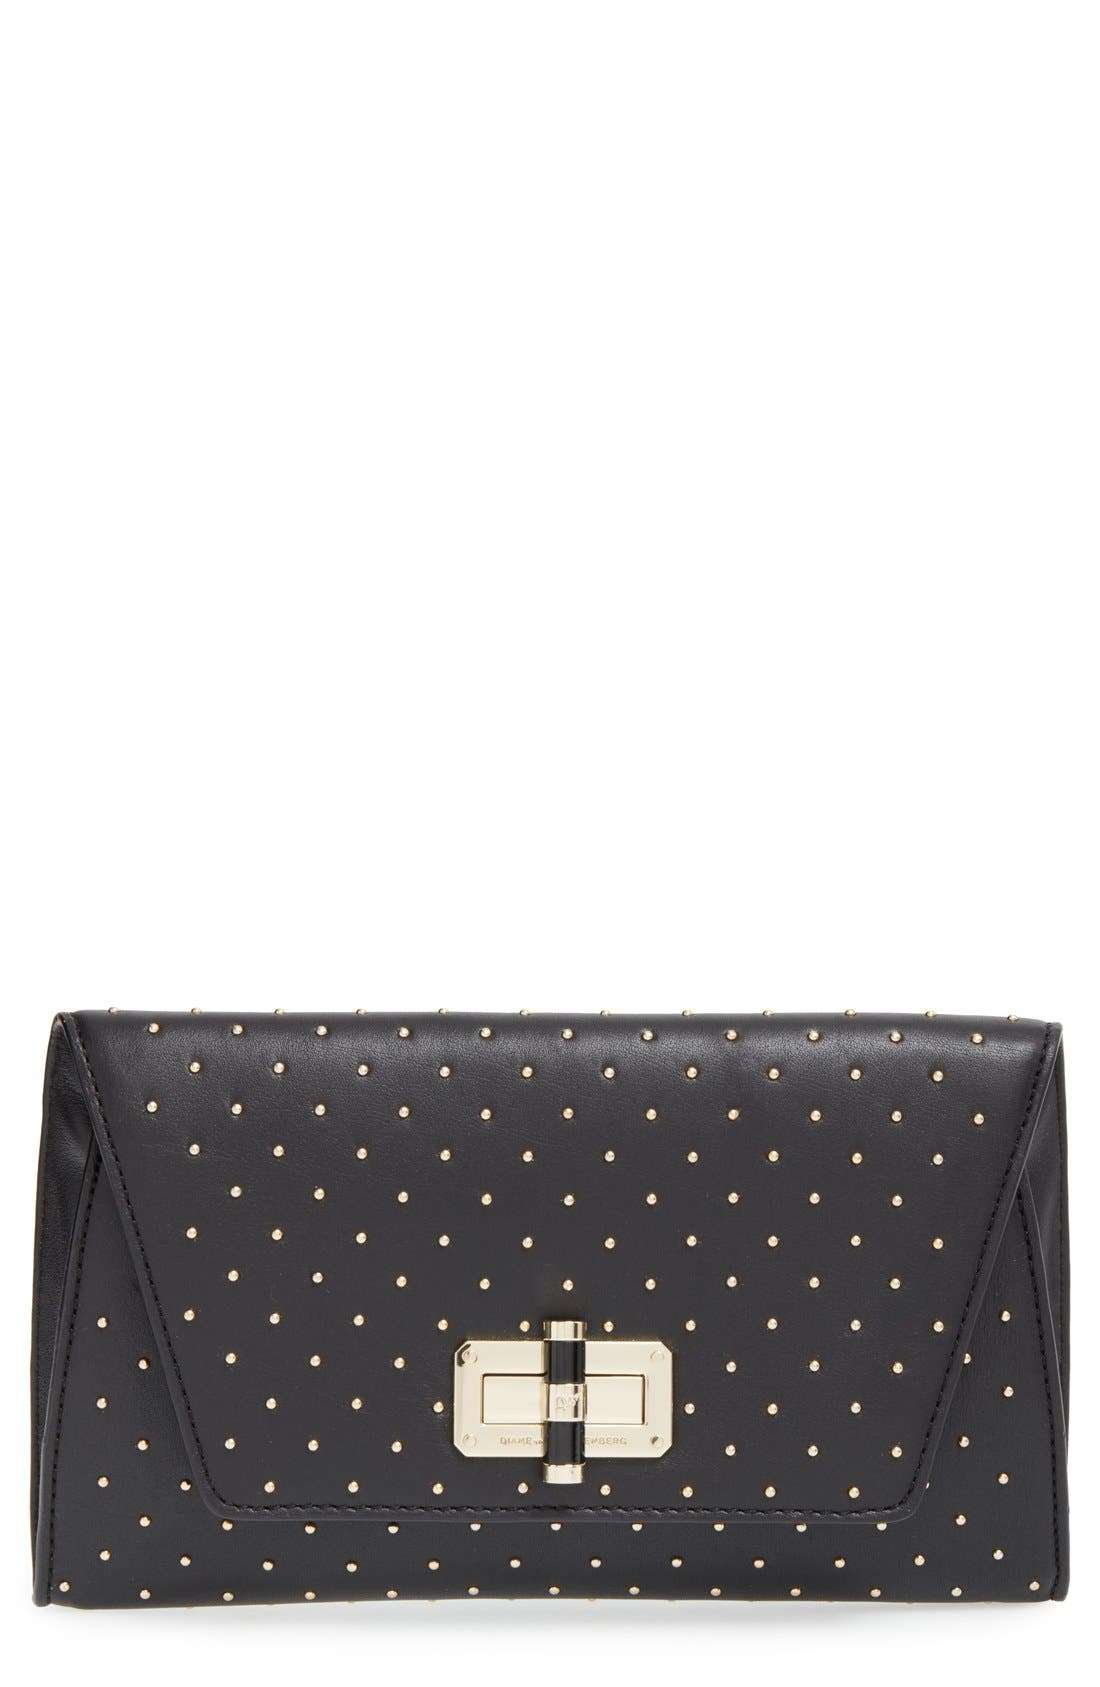 Alternate Image 1 Selected - Diane von Furstenberg '440 Glory Uptown' Studded Leather Clutch